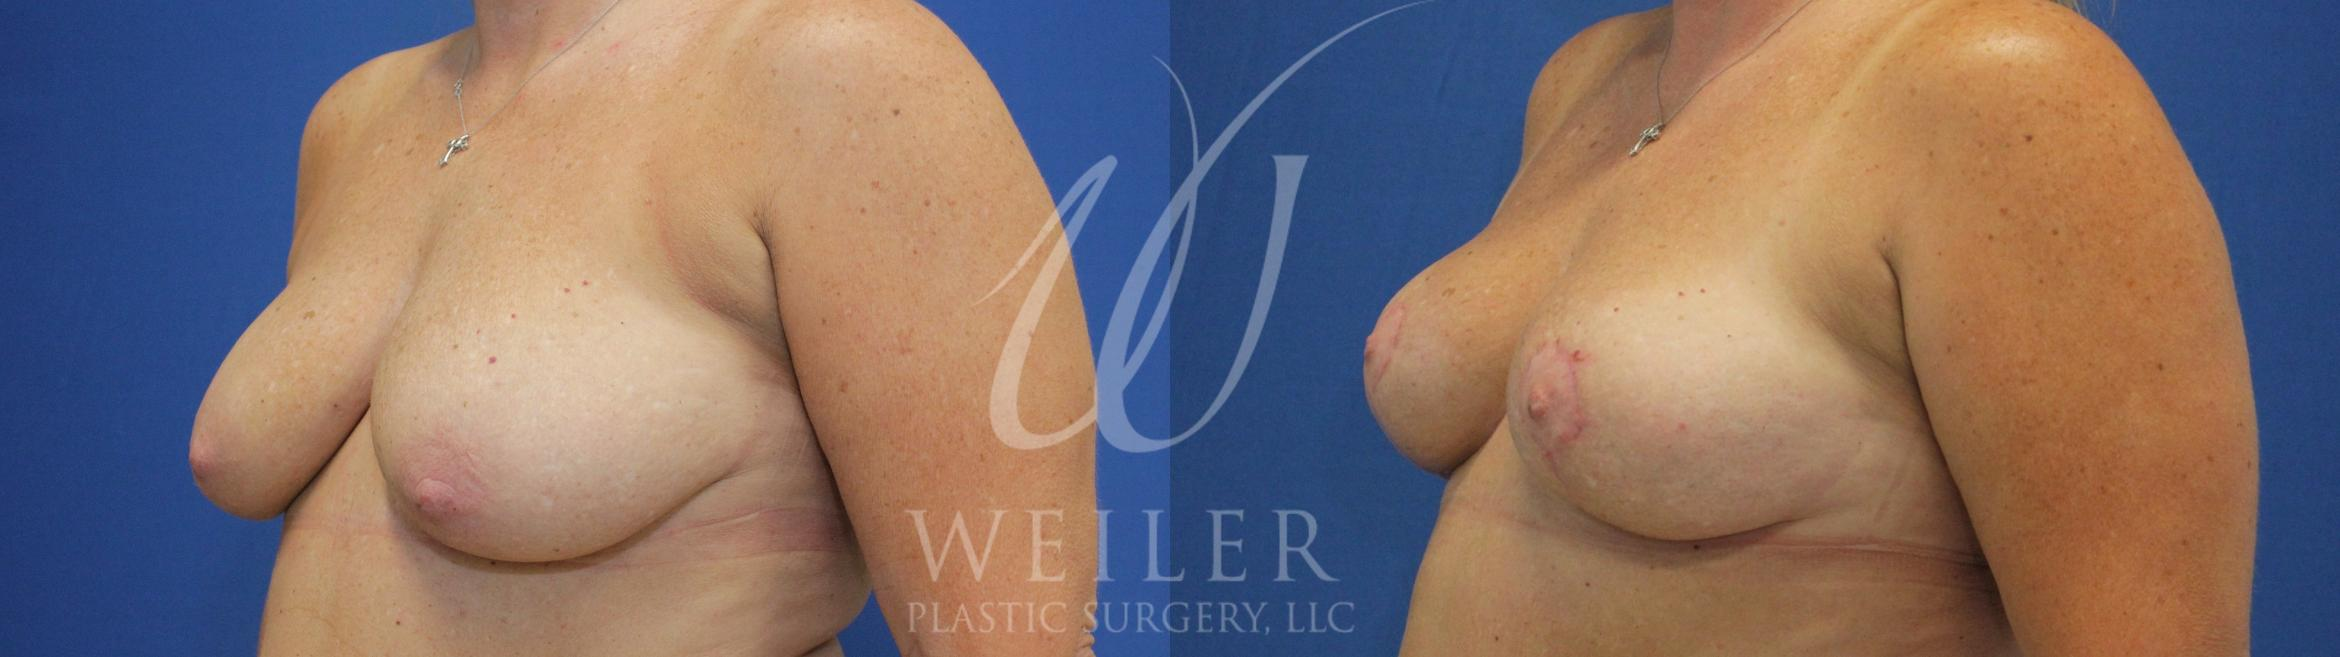 Breast Lift Before & After Photo | Baton Rouge, Louisiana | Weiler Plastic Surgery